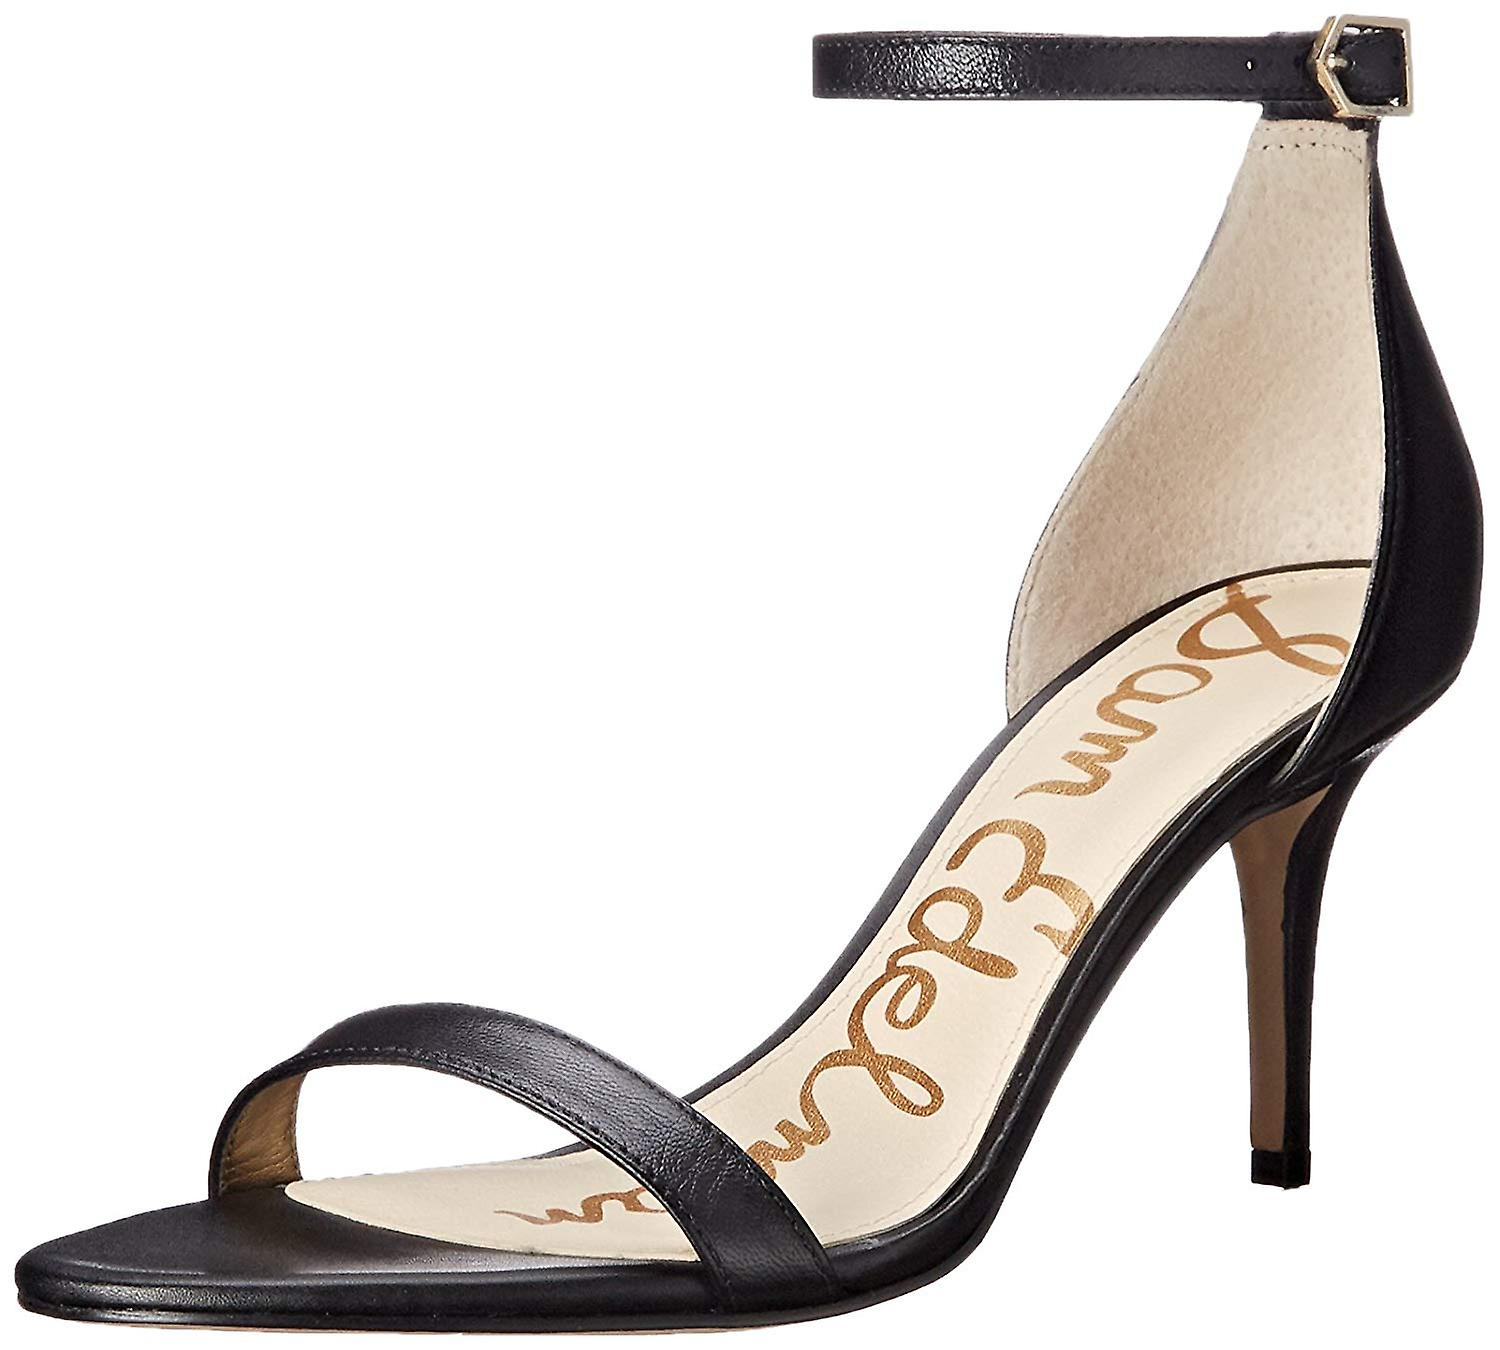 Sam Edelman Womens Patti Leather Open Toe Casual Ankle Strap Sandals